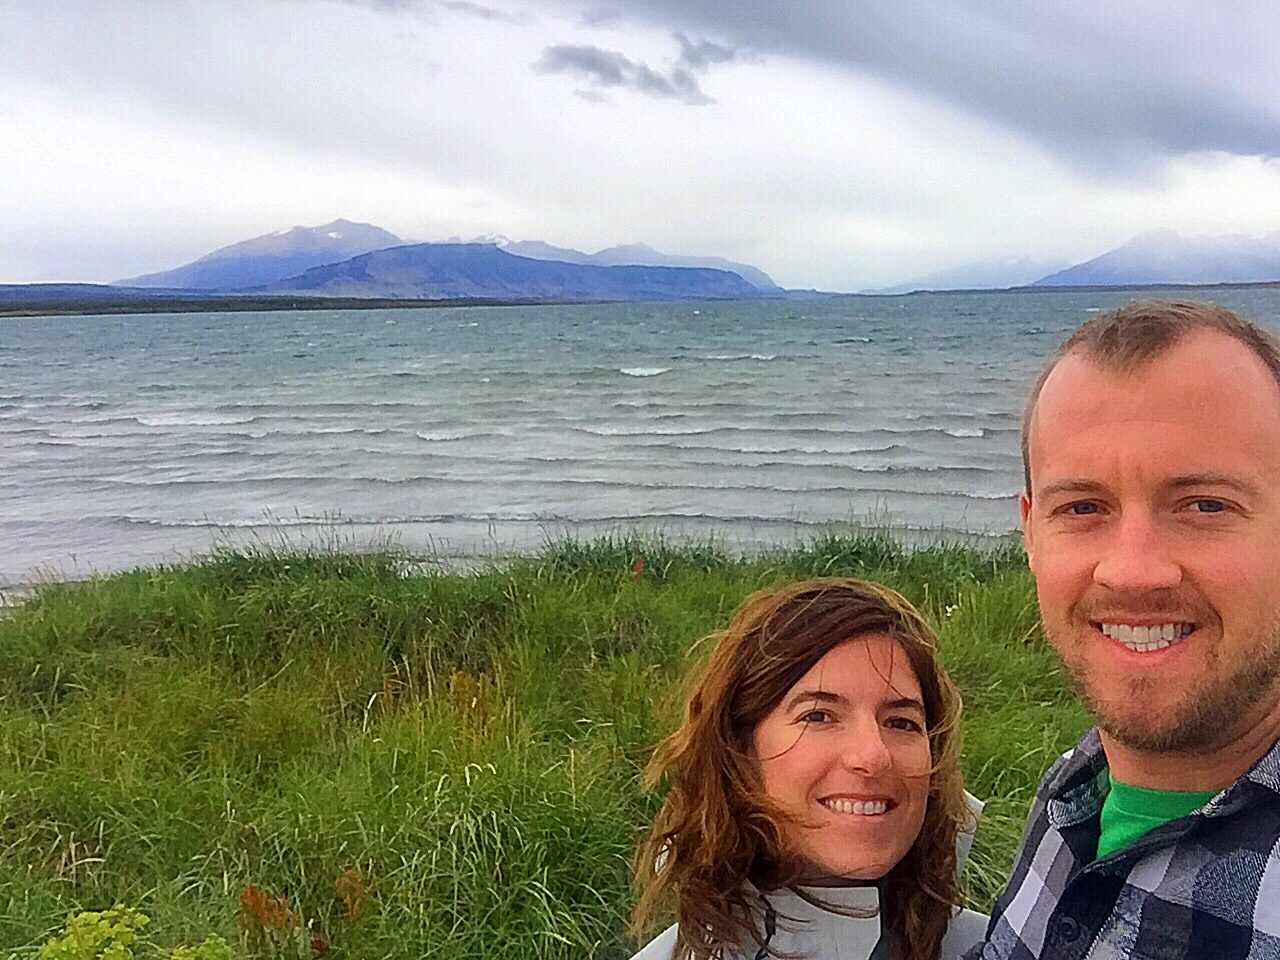 Us setting off from Puerto Natales